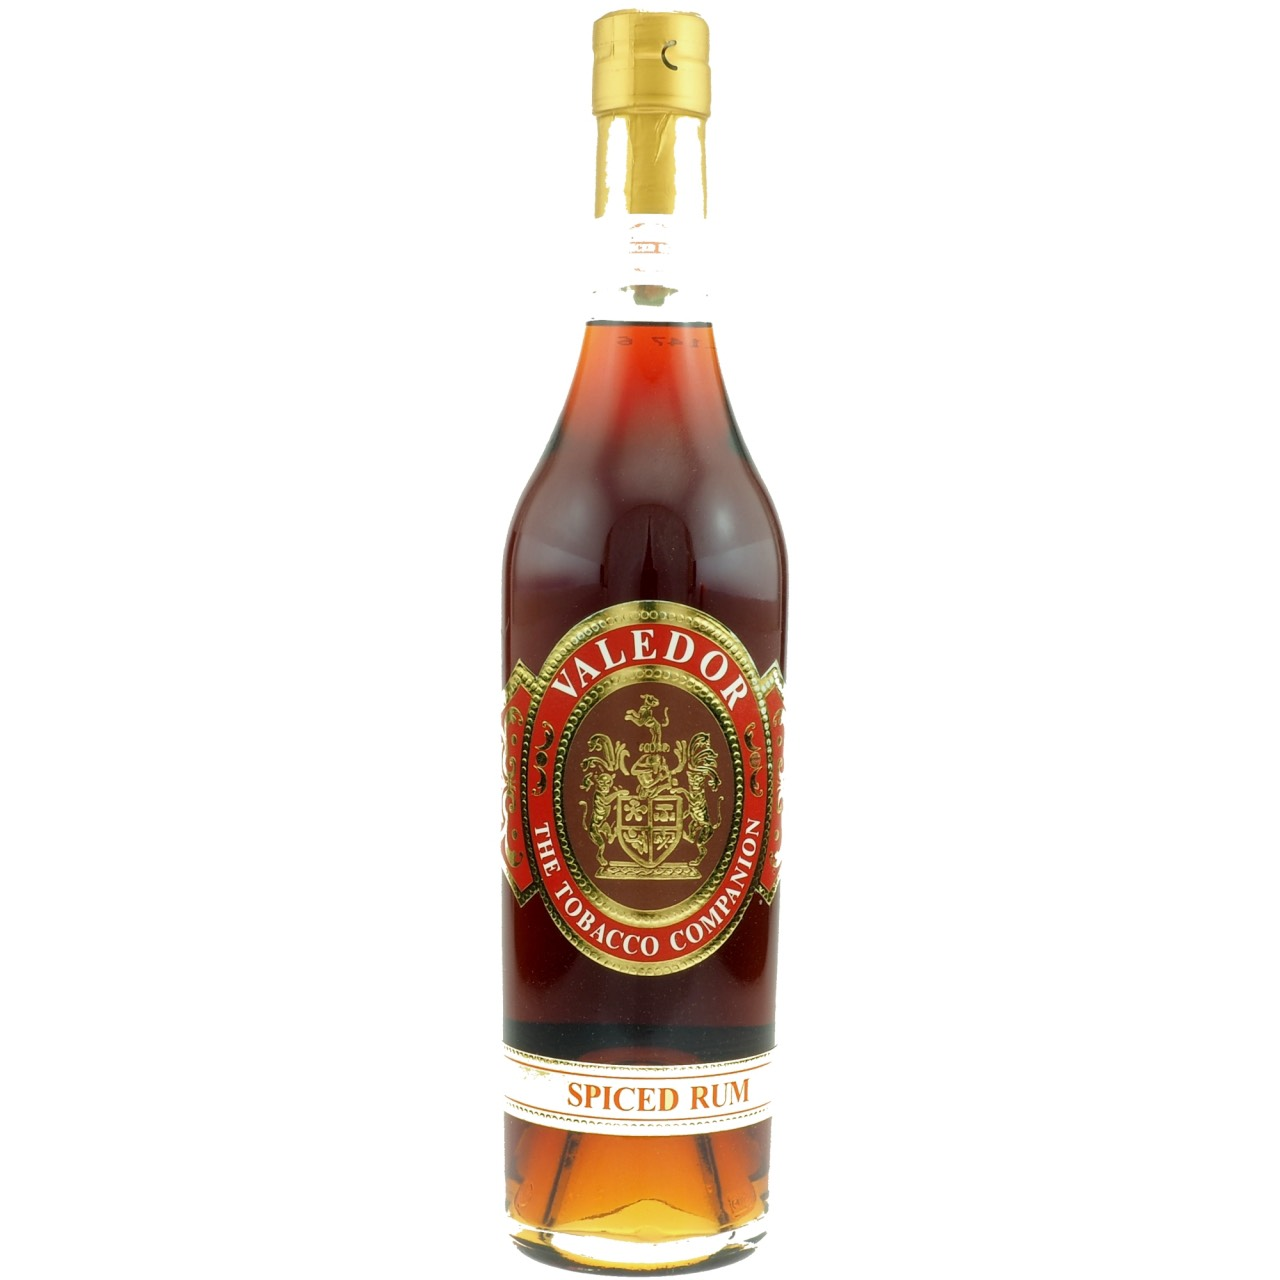 Bottle image of Spiced Rum The Tobacco Companion